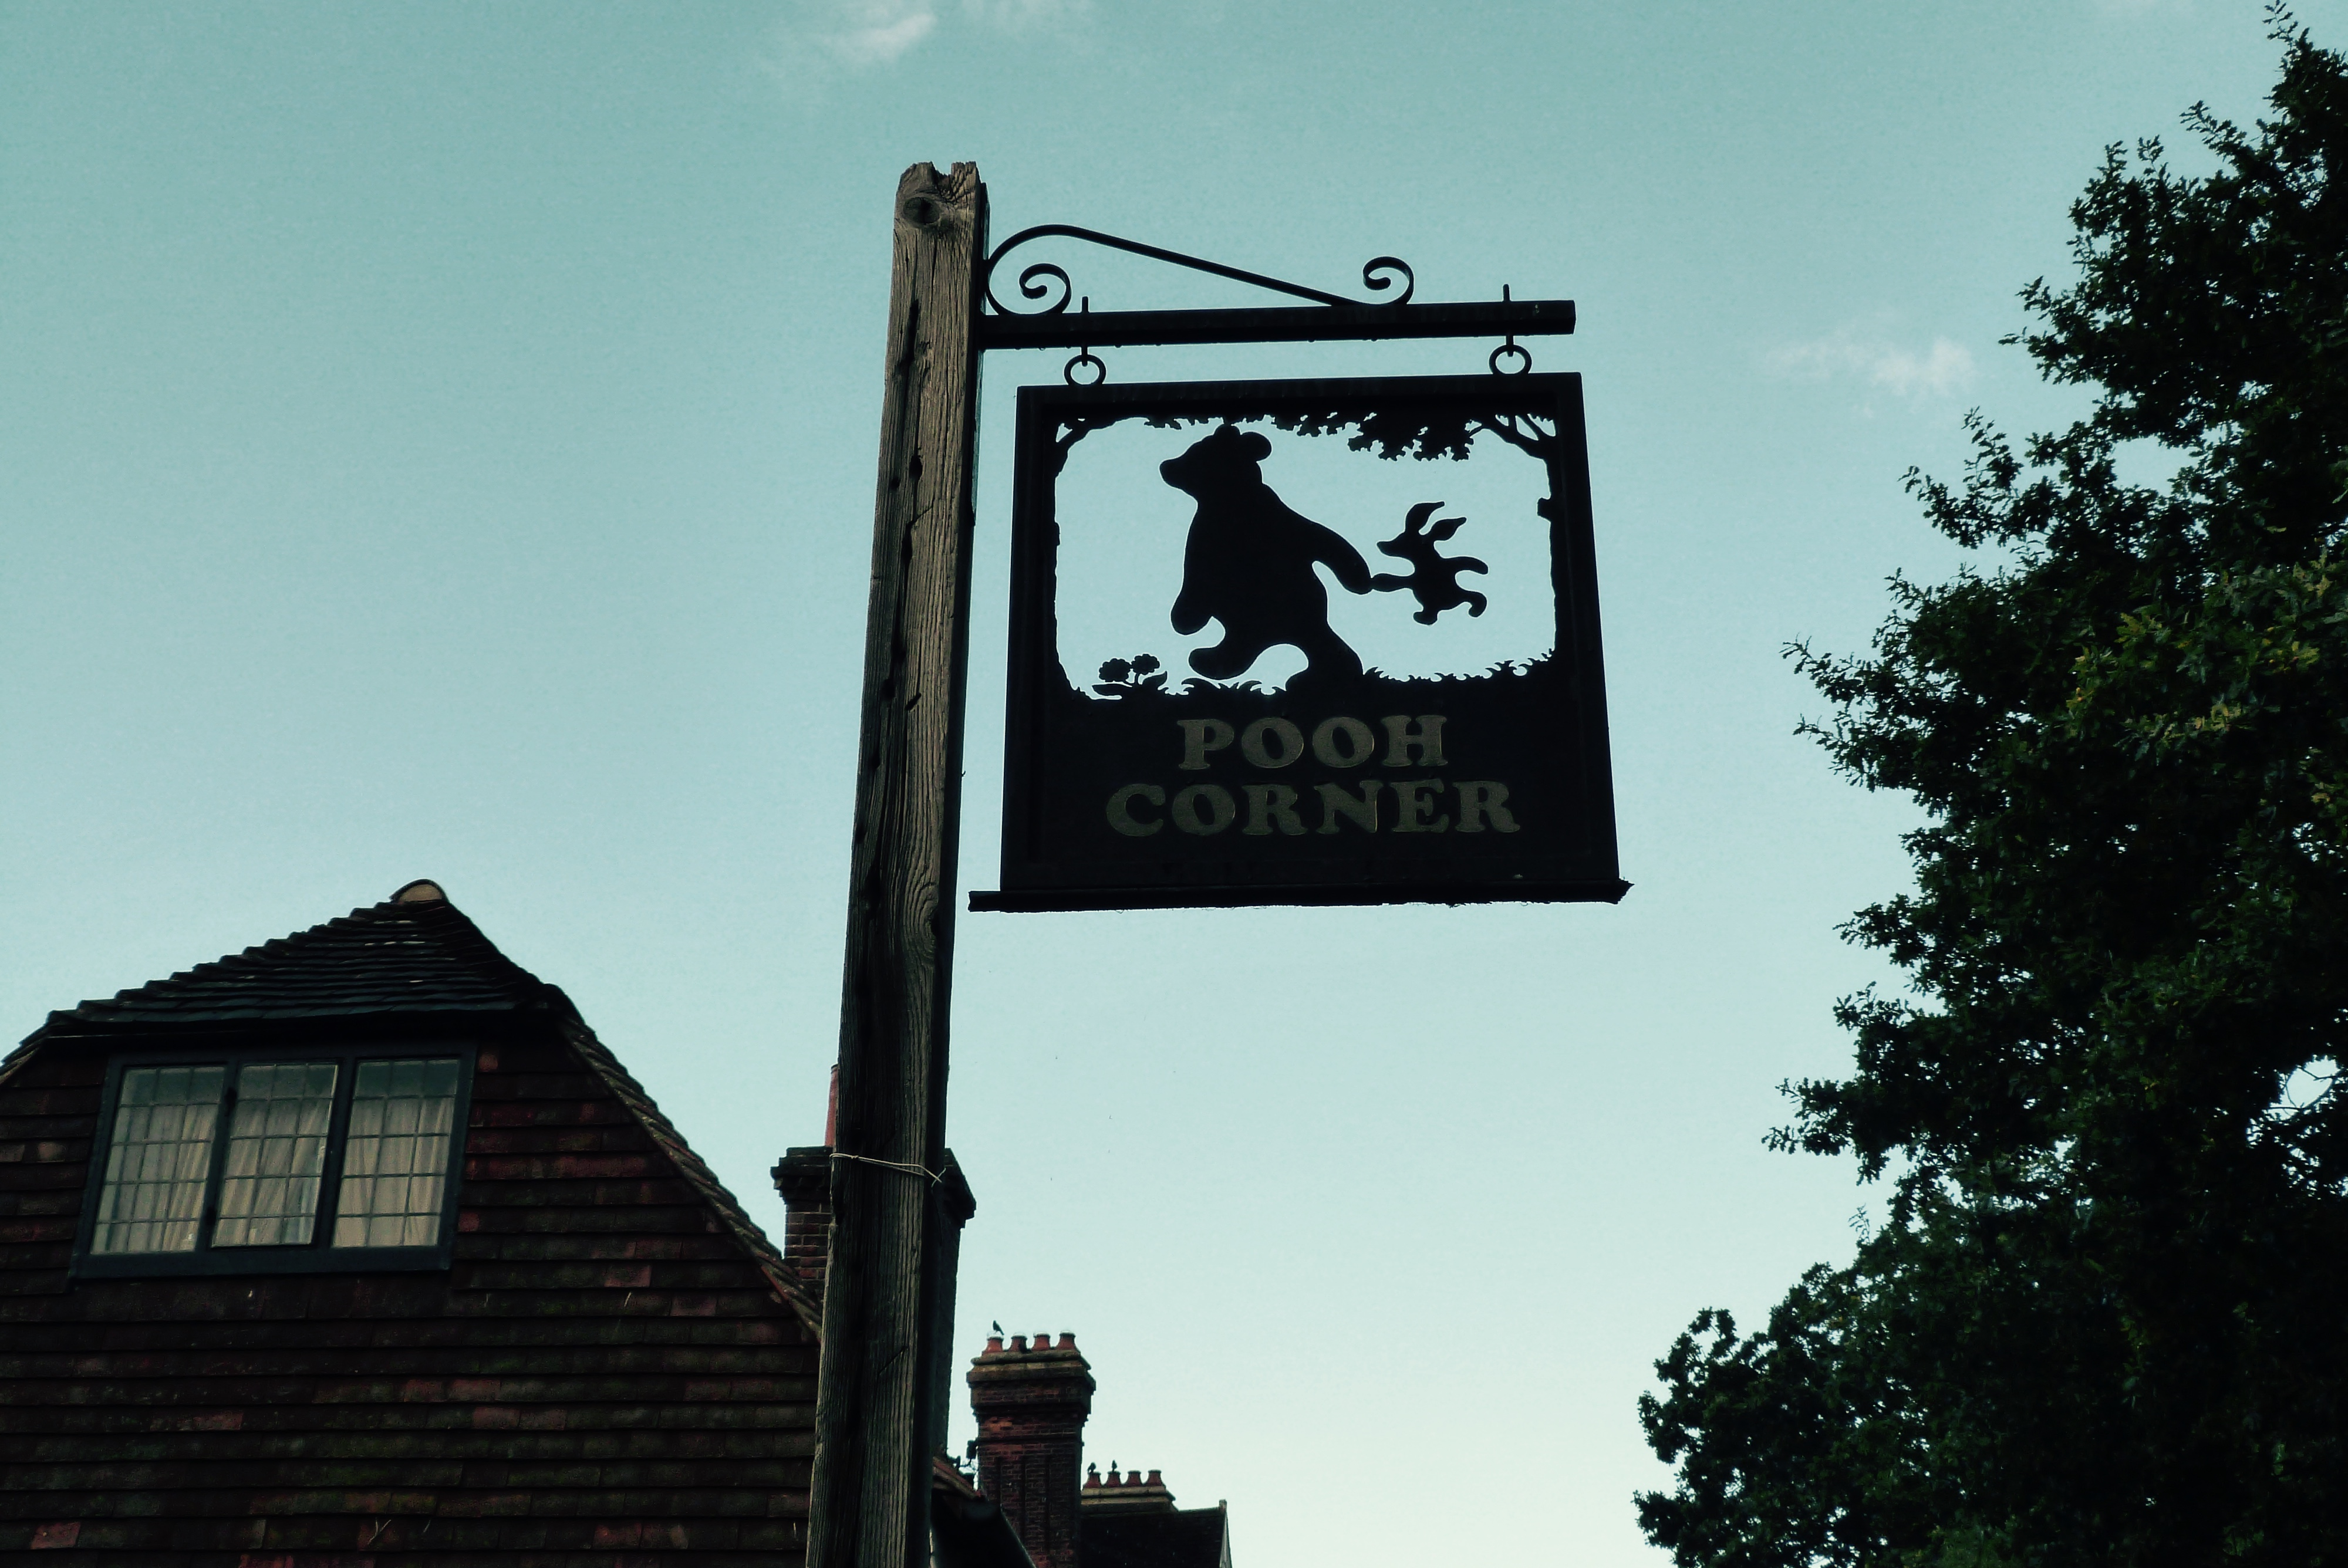 The Pooh Corner shop in Hartfield, the village that was home to the country farm Milne bought in the early 1920s, on Oct. 10 2016.